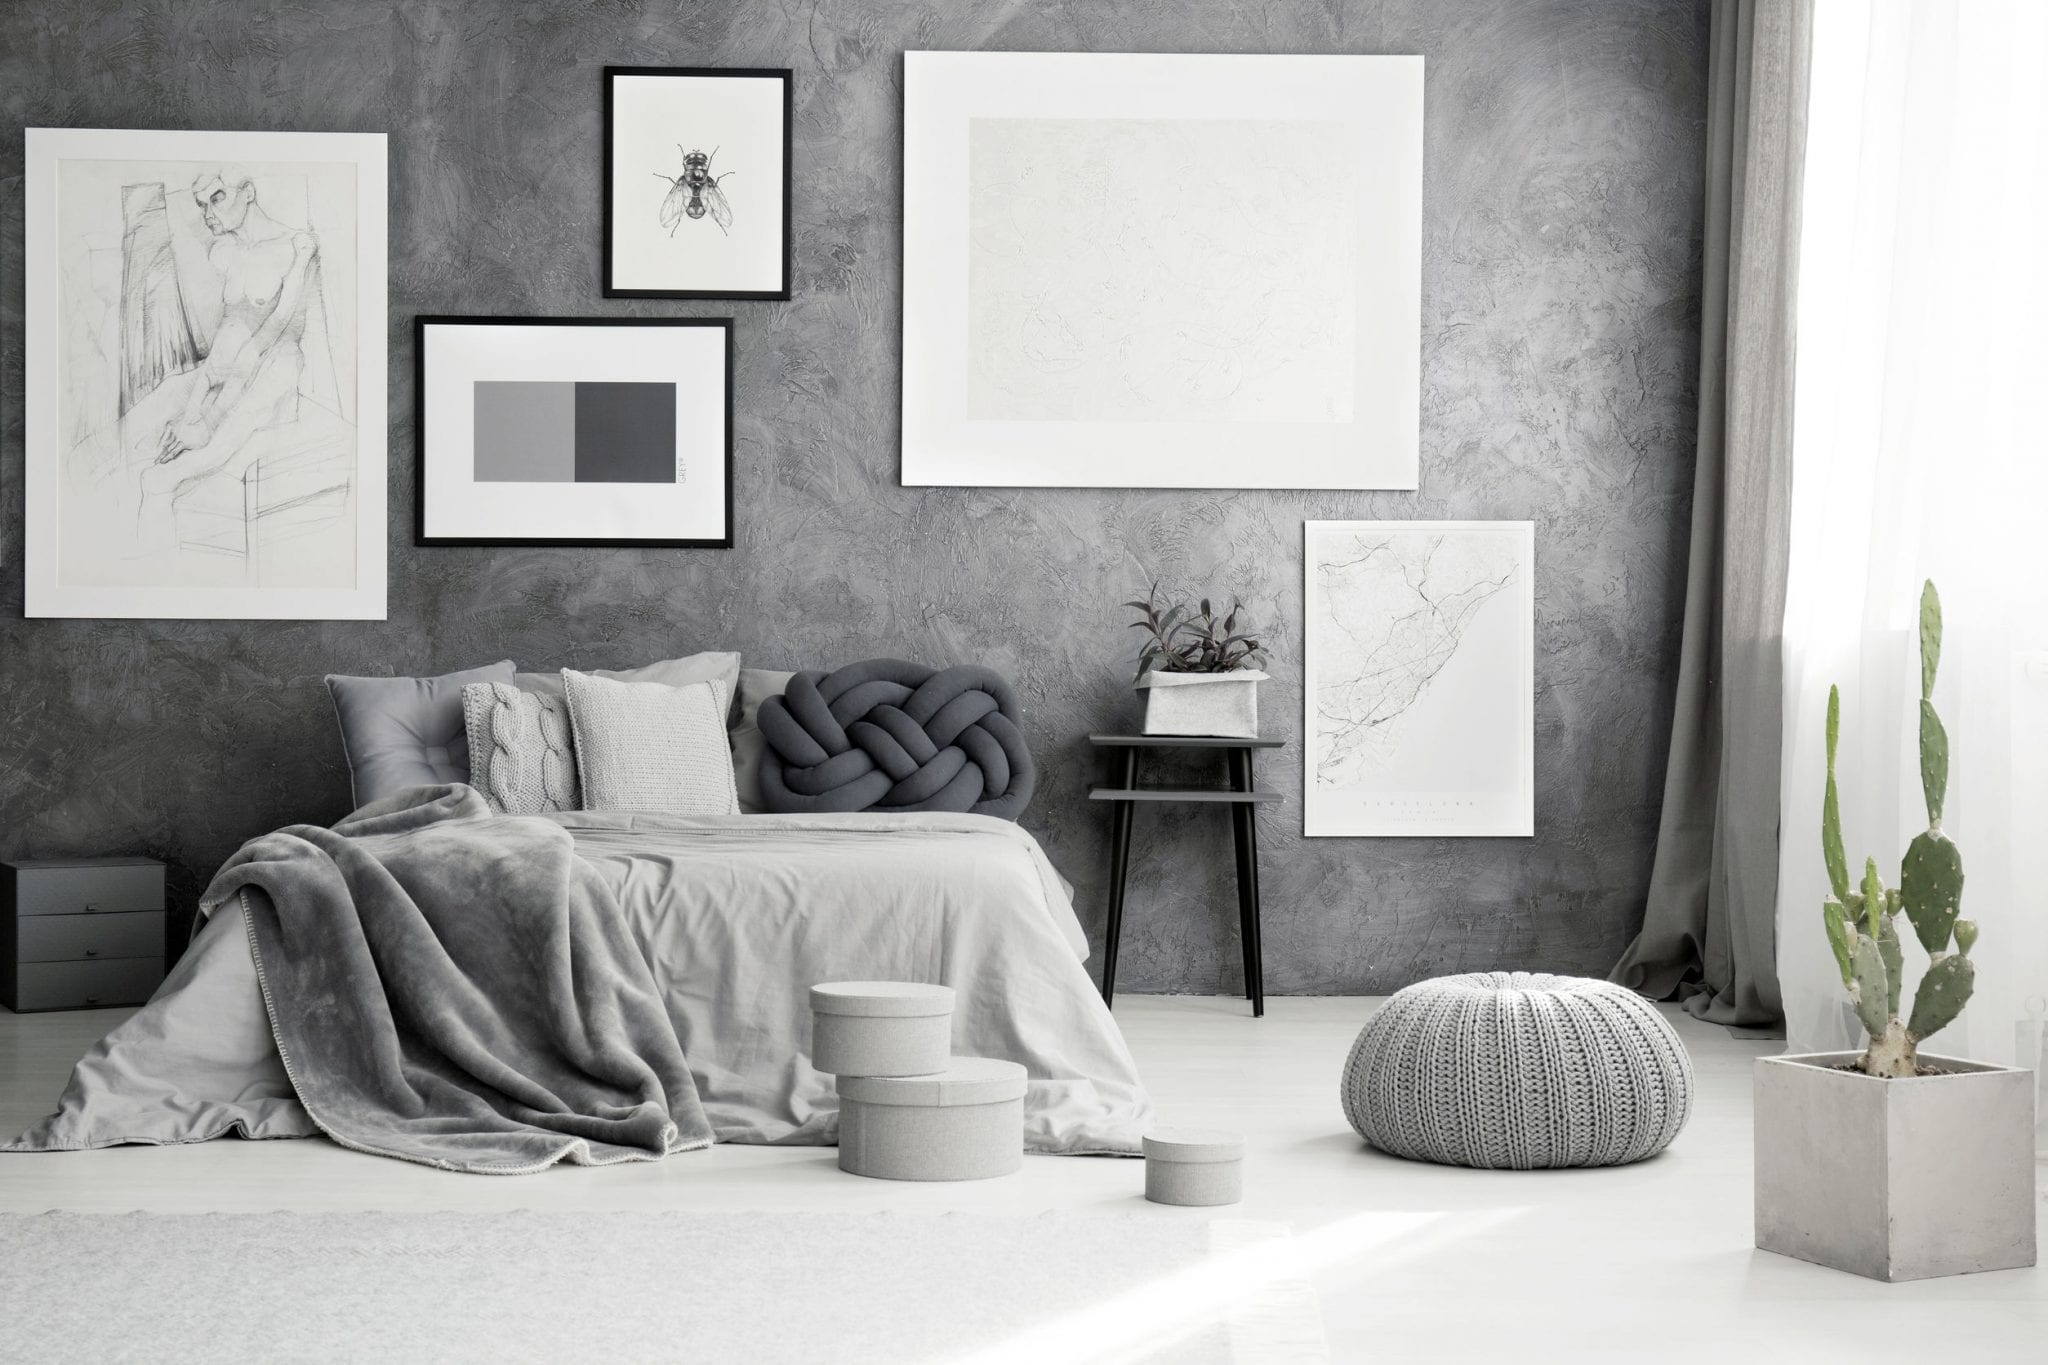 Cactus and pouf near king size bed with grey blanket in bedroom with gallery of posters on concrete wall